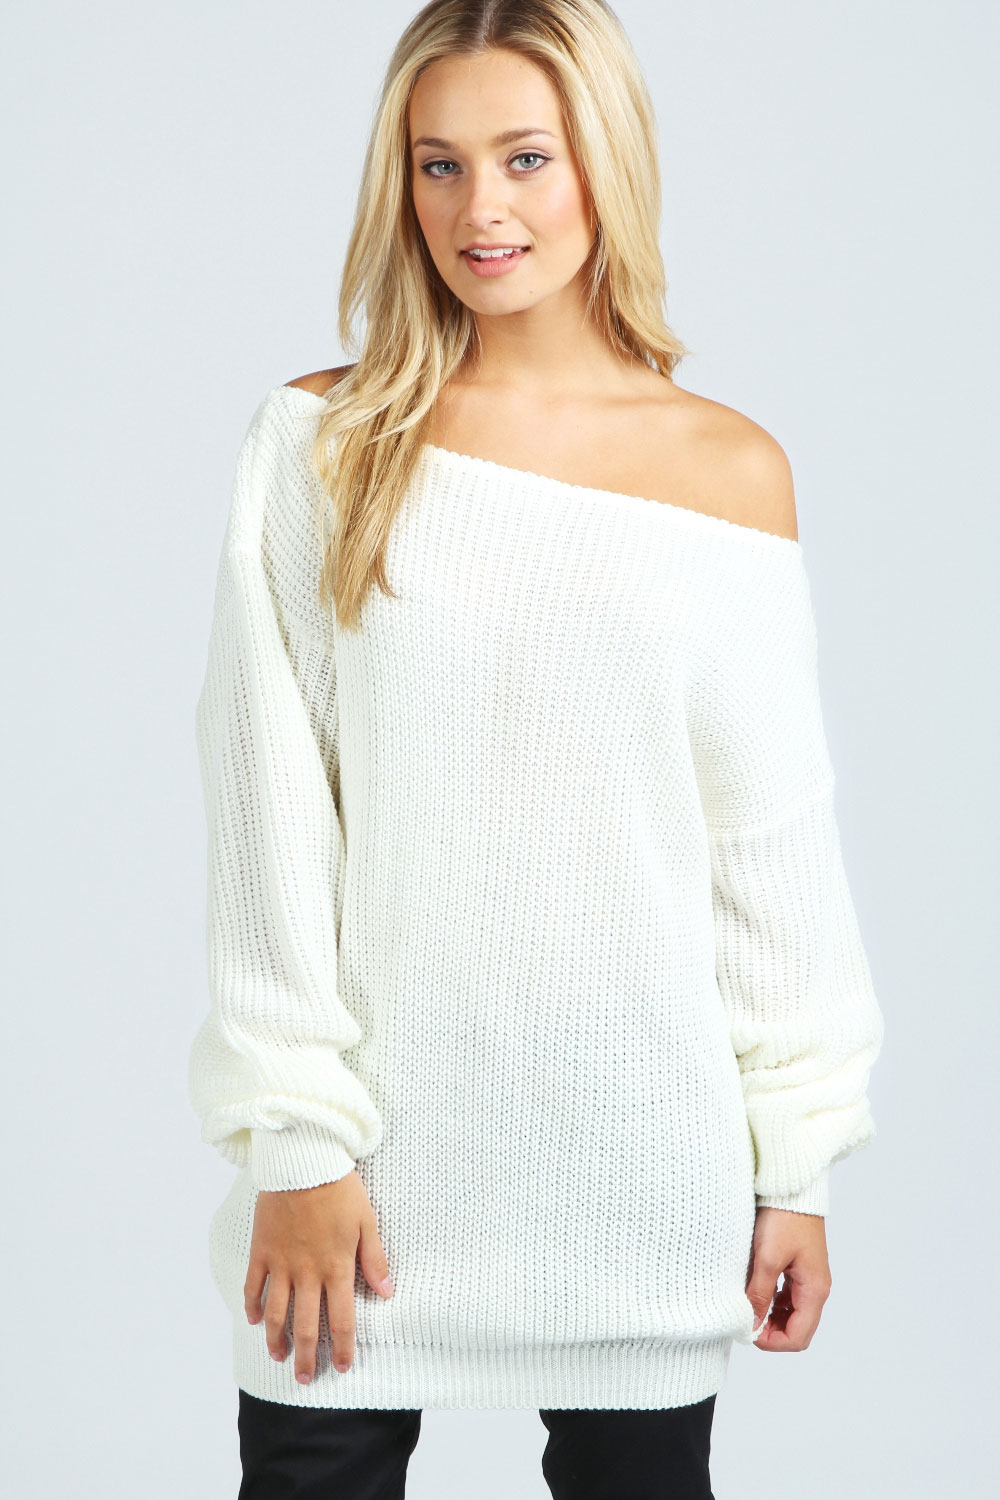 Boohoo-Womens-Ladies-Lola-Slash-Neck-Fisherman-Jumper